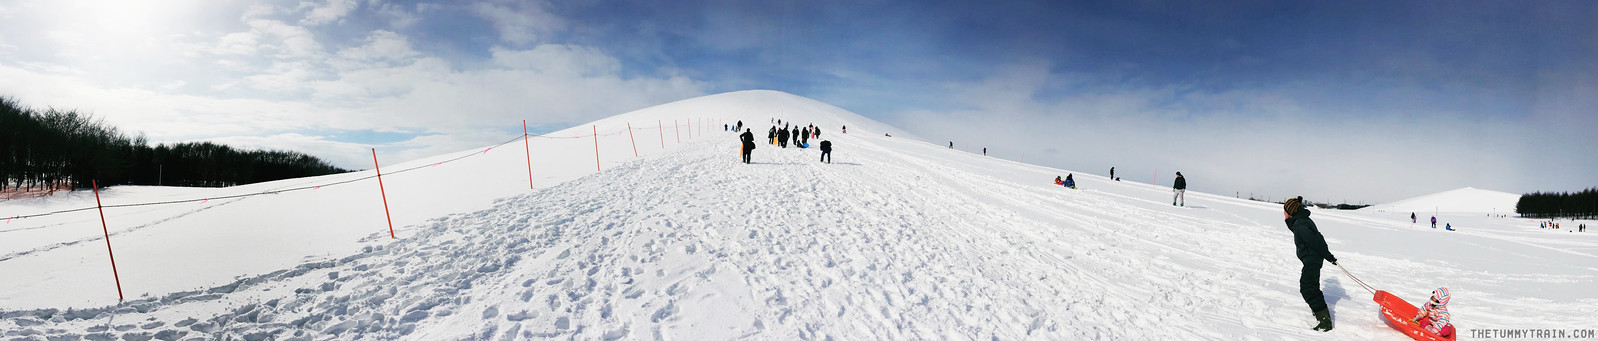 32536262330 90740402cc h - Sapporo Travel Diary 2017: Having a grand old time at Moerenuma Park